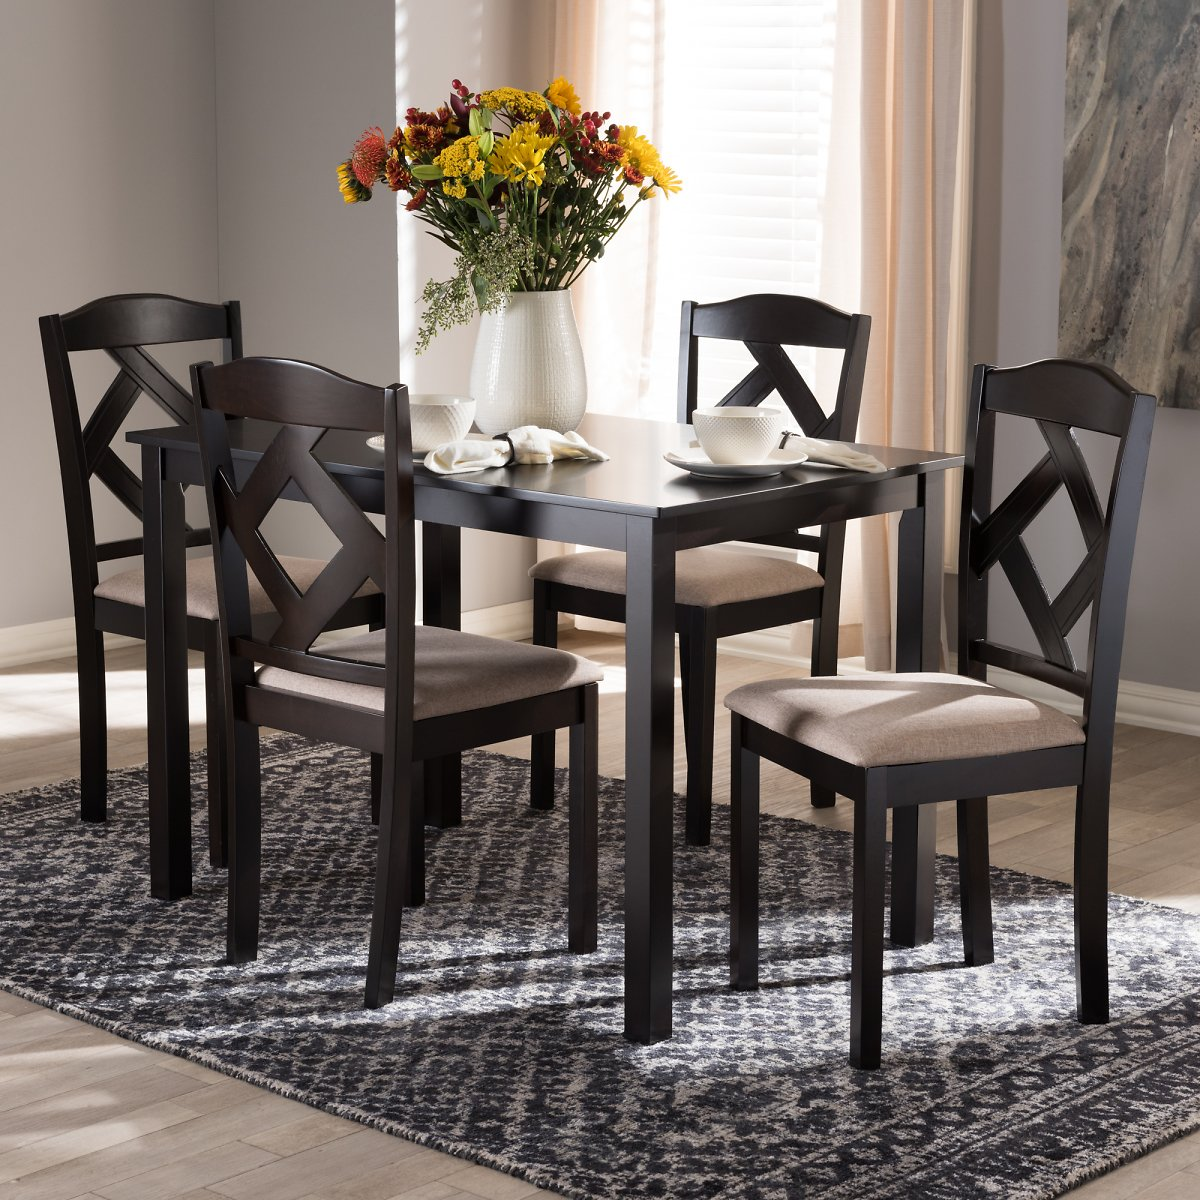 Baxton Studio Ruth Modern and Contemporary Dark Brown Finished 5-Piece Dining Set